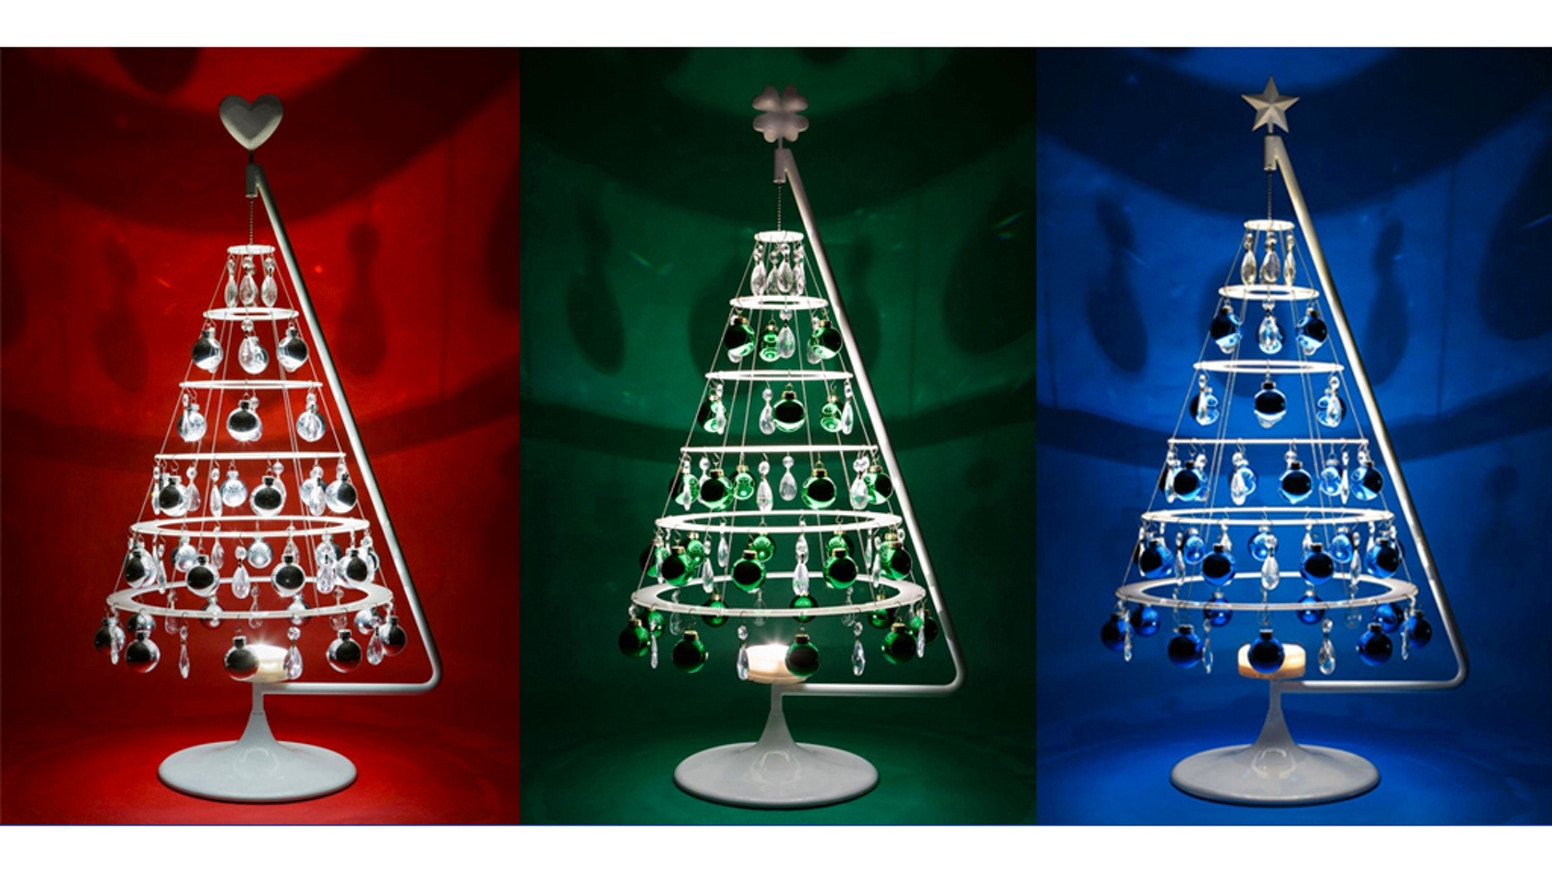 The Jubilee from Modern Christmas Trees transforms every space into a visual celebration. With its light and shadow play, this little tree fills any size room.